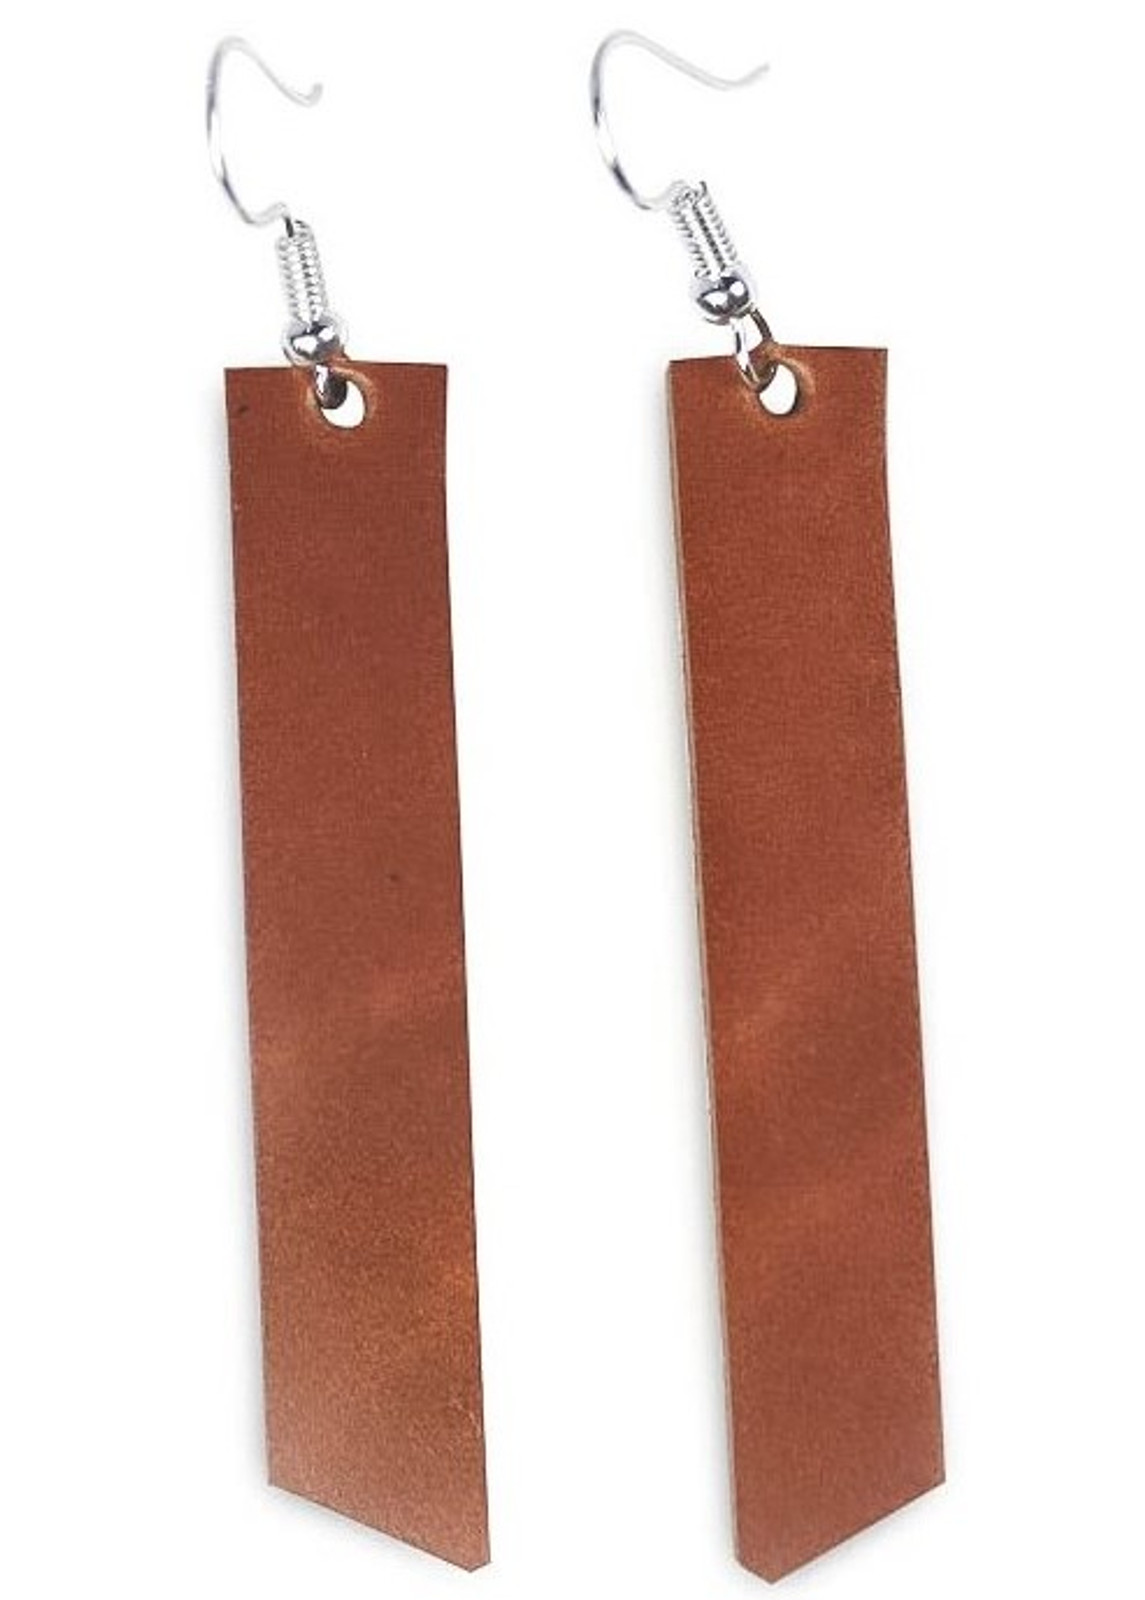 Burnt tan Leather Earrings, Leather jewelry, Leather accessories, boho style, boho jewelry, hippie style, hippie jewelry, handcrafted, made in usa